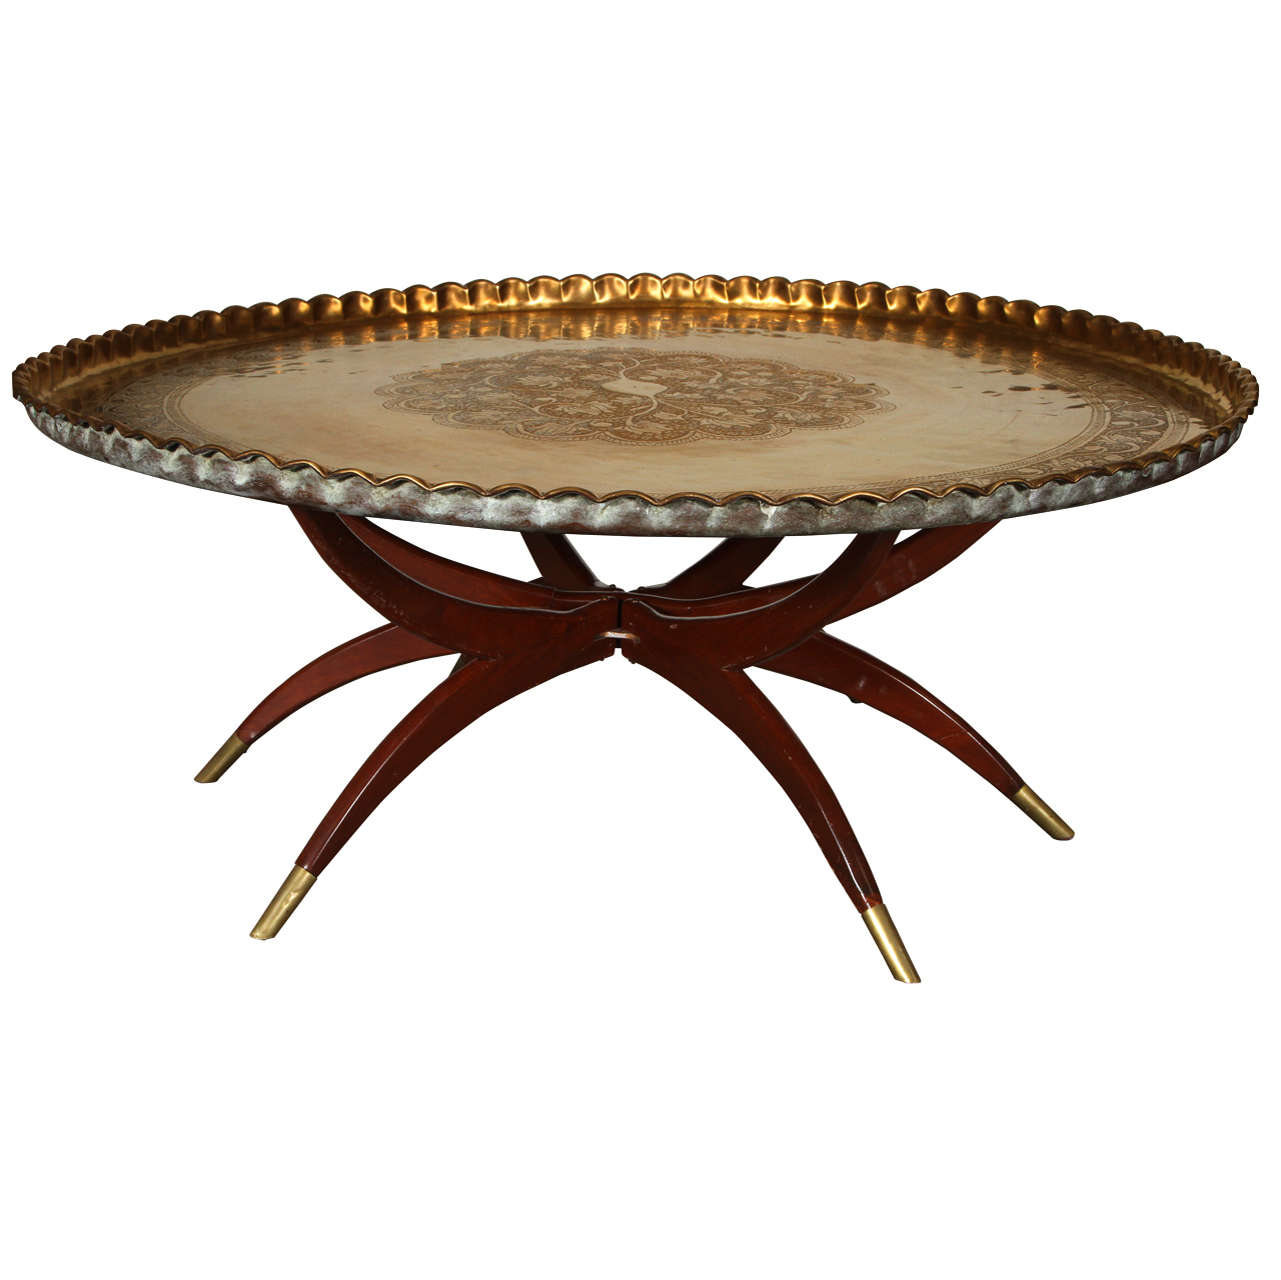 "Large Round Brass Tray Table On Folding Stand 45"" Diameter"